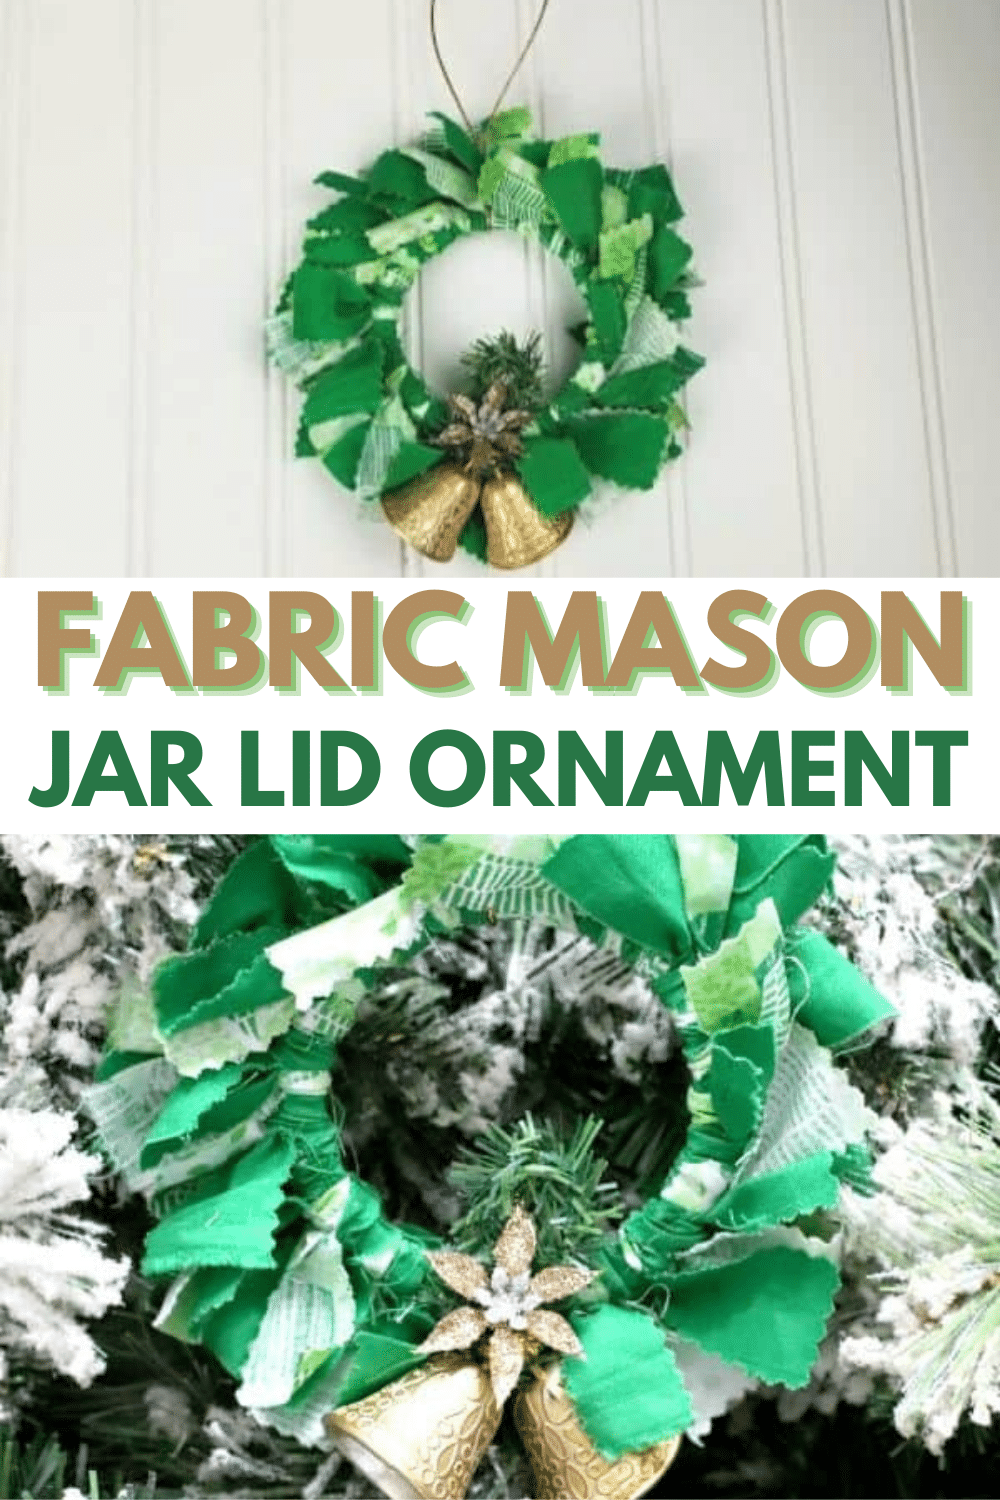 These DIY fabric mason jar lid ornaments are so easy to make and are a great way to use up scrap fabric and repurpose old mason jar lid rings. #diyornaments #christmas #repurpose via @wondermomwannab